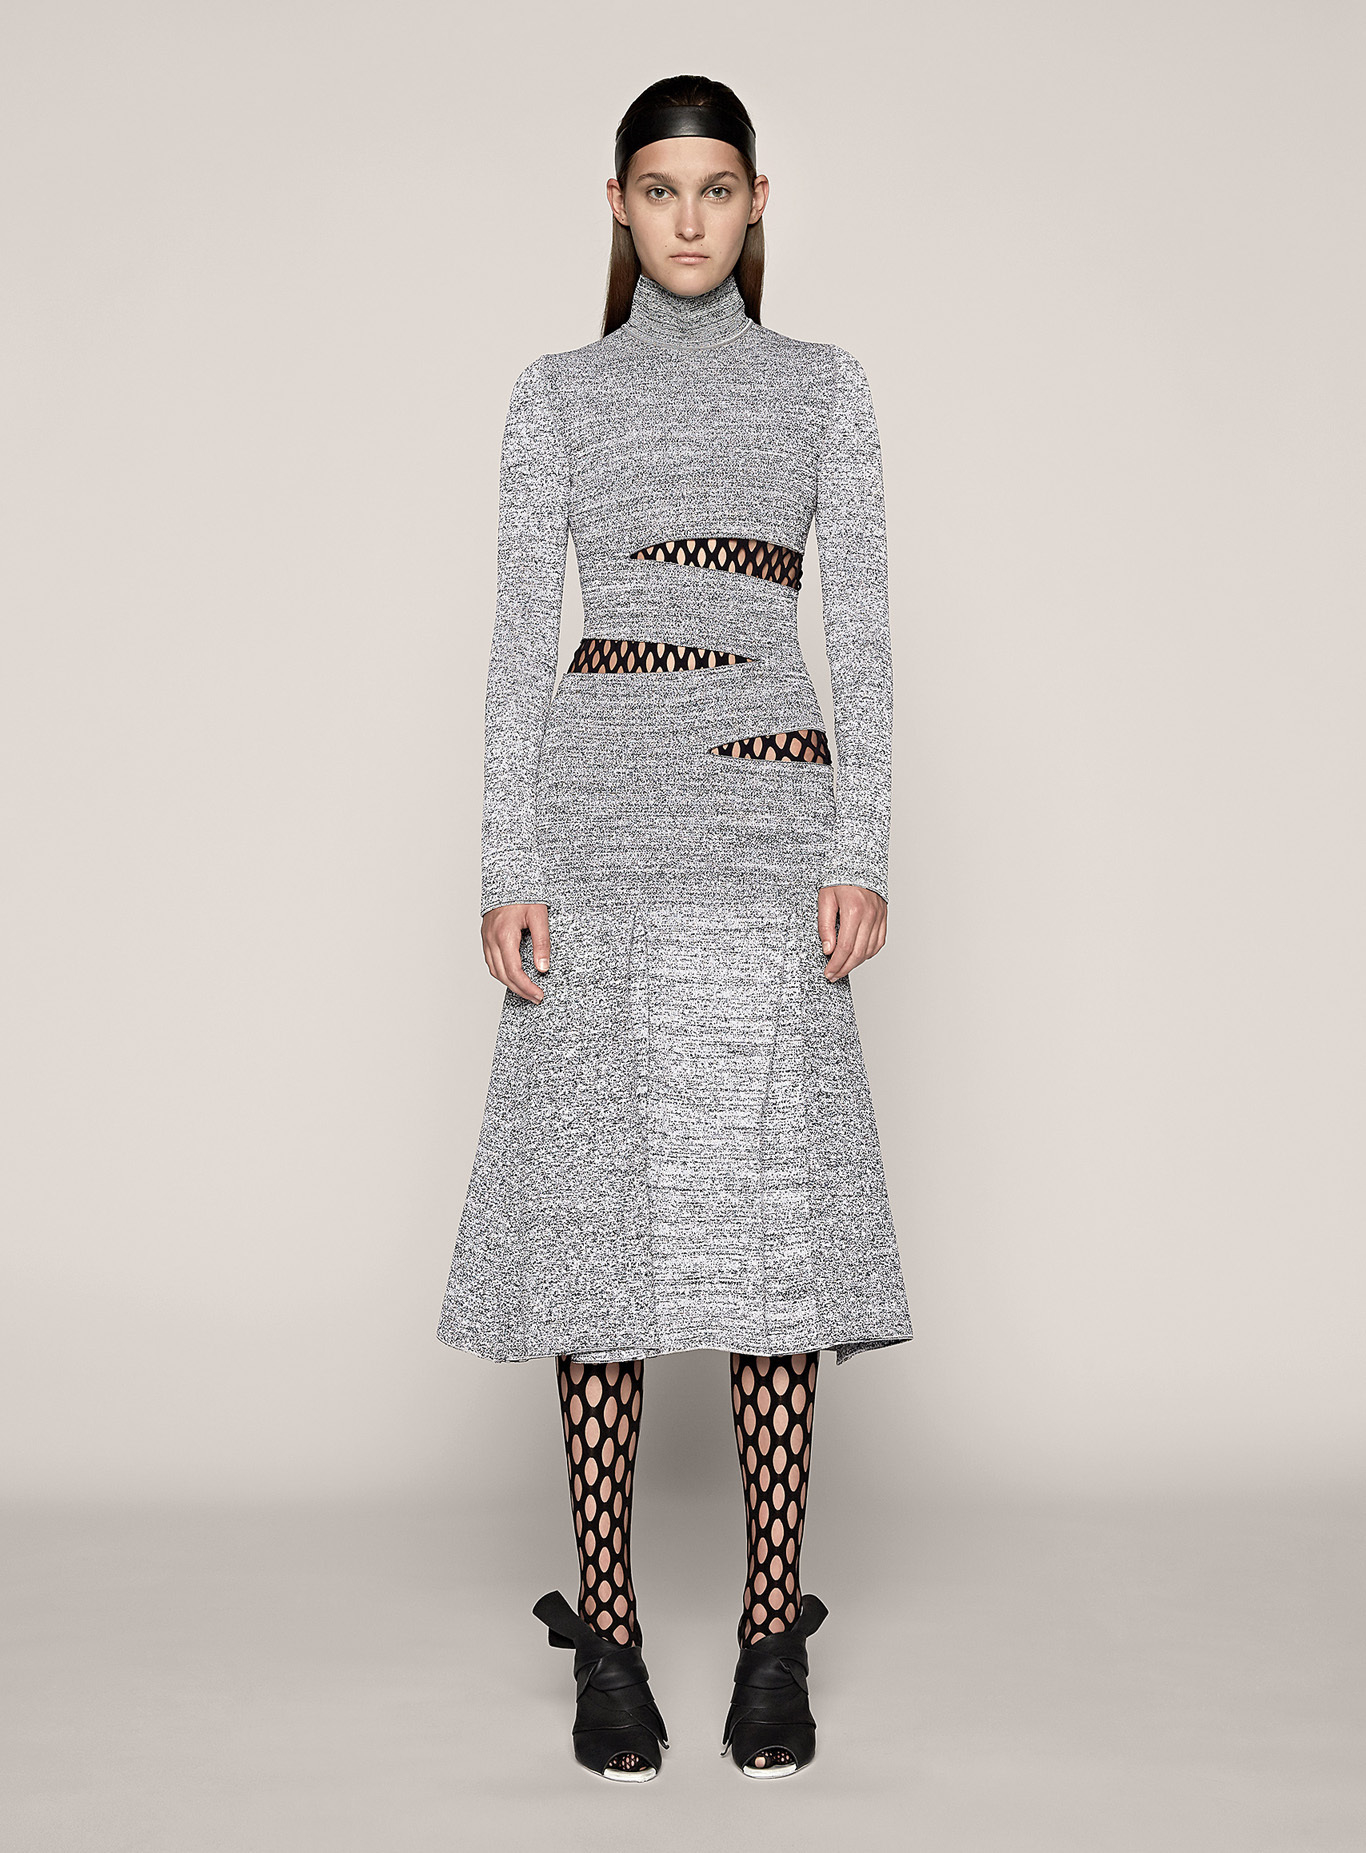 Knitting Pattern Turtleneck Dress : Proenza Schouler Turtleneck Knit Dress in Black (White/Black) Lyst